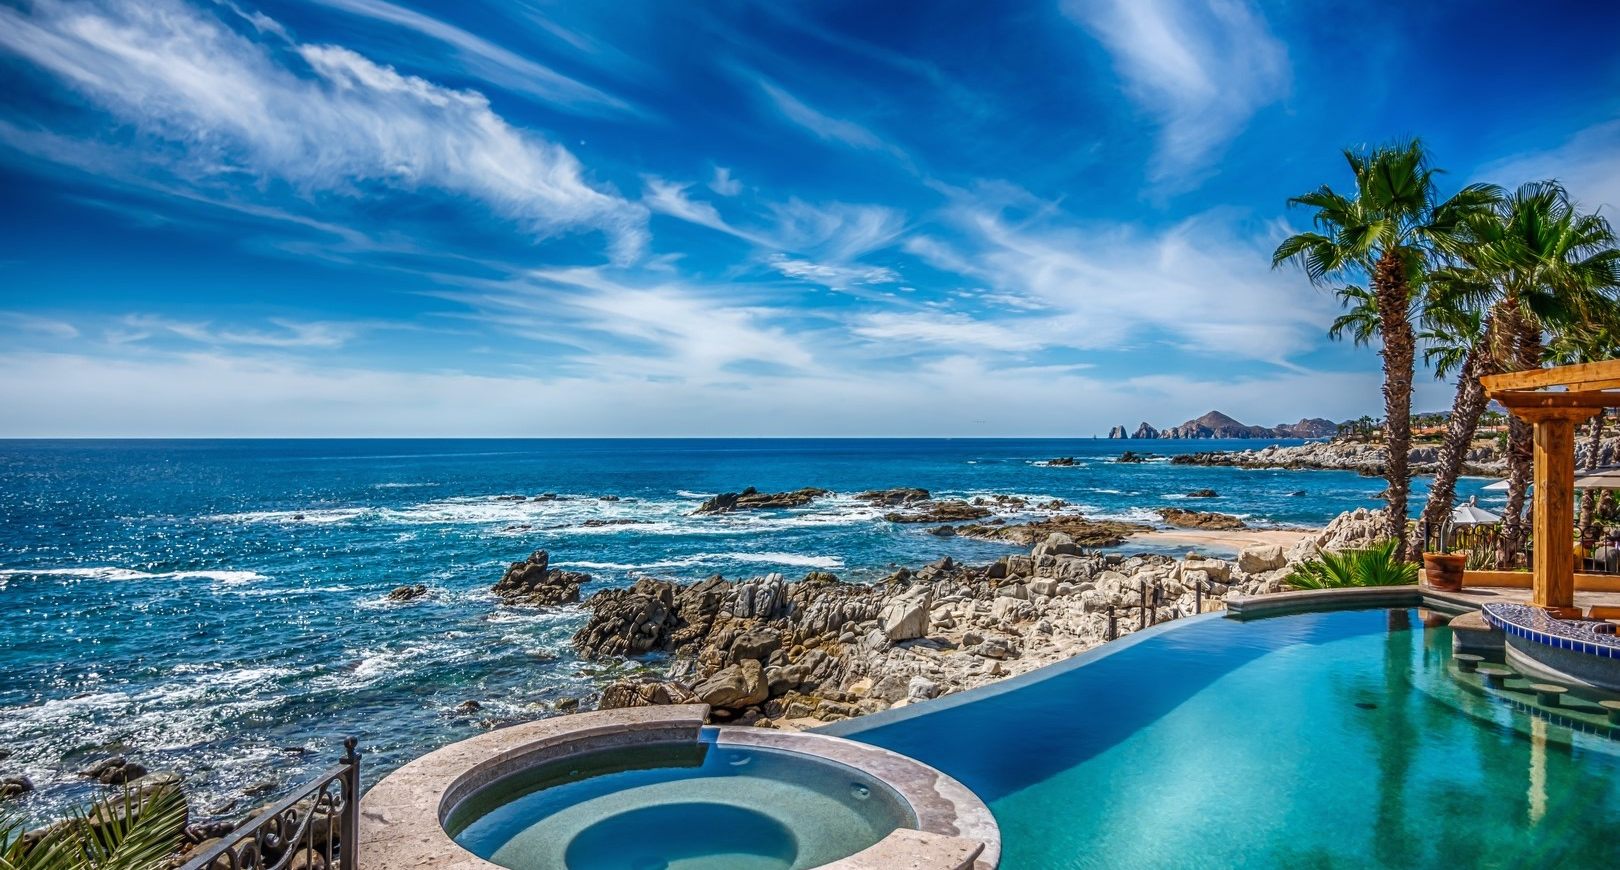 Great view from Hacienda La Carreta, Punta Ballena, Los Cabos, Mexico